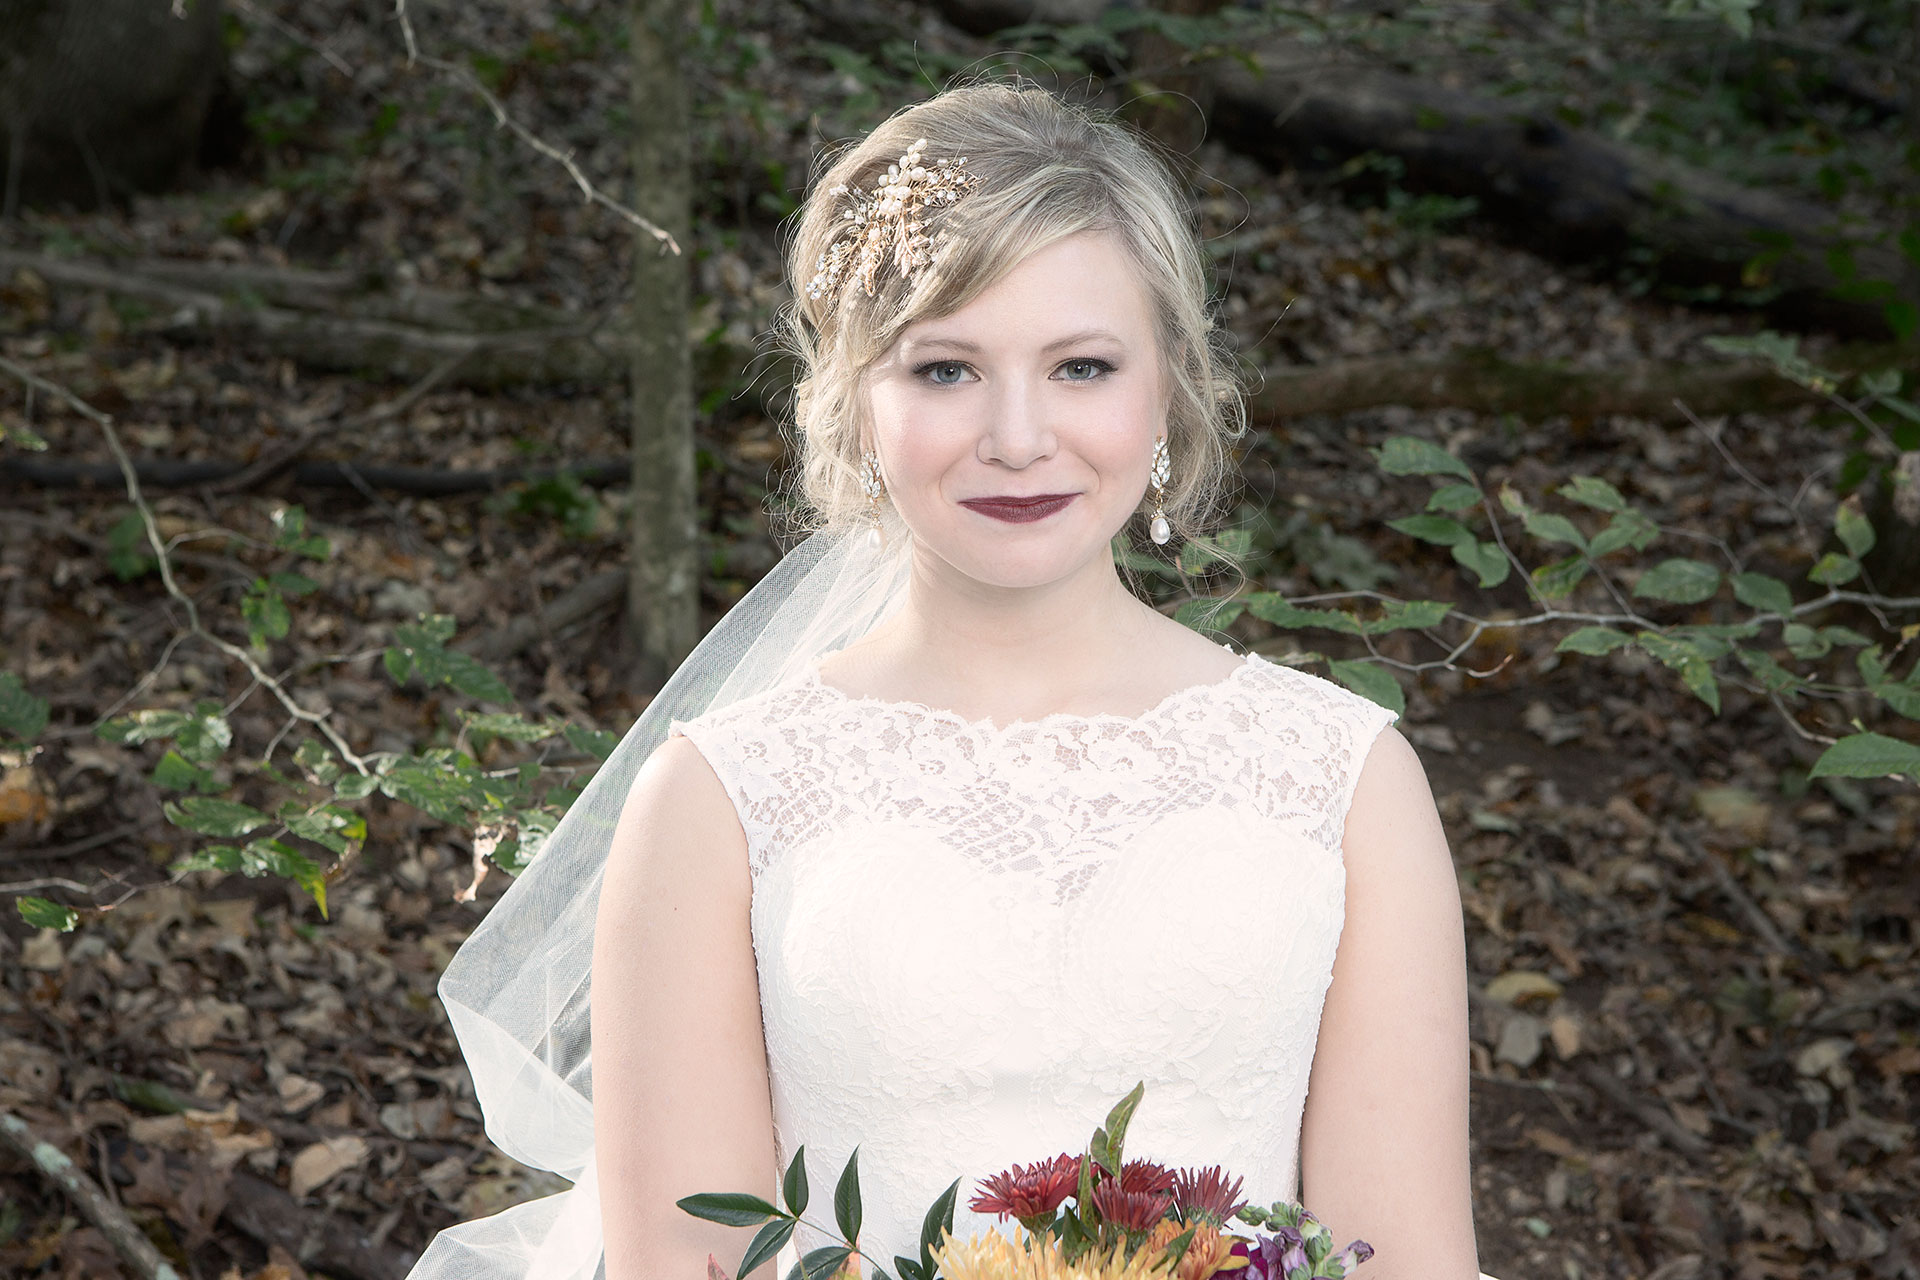 Fall Wedding Formal Bridal Chignon Hairstyle with Veil and Accessory